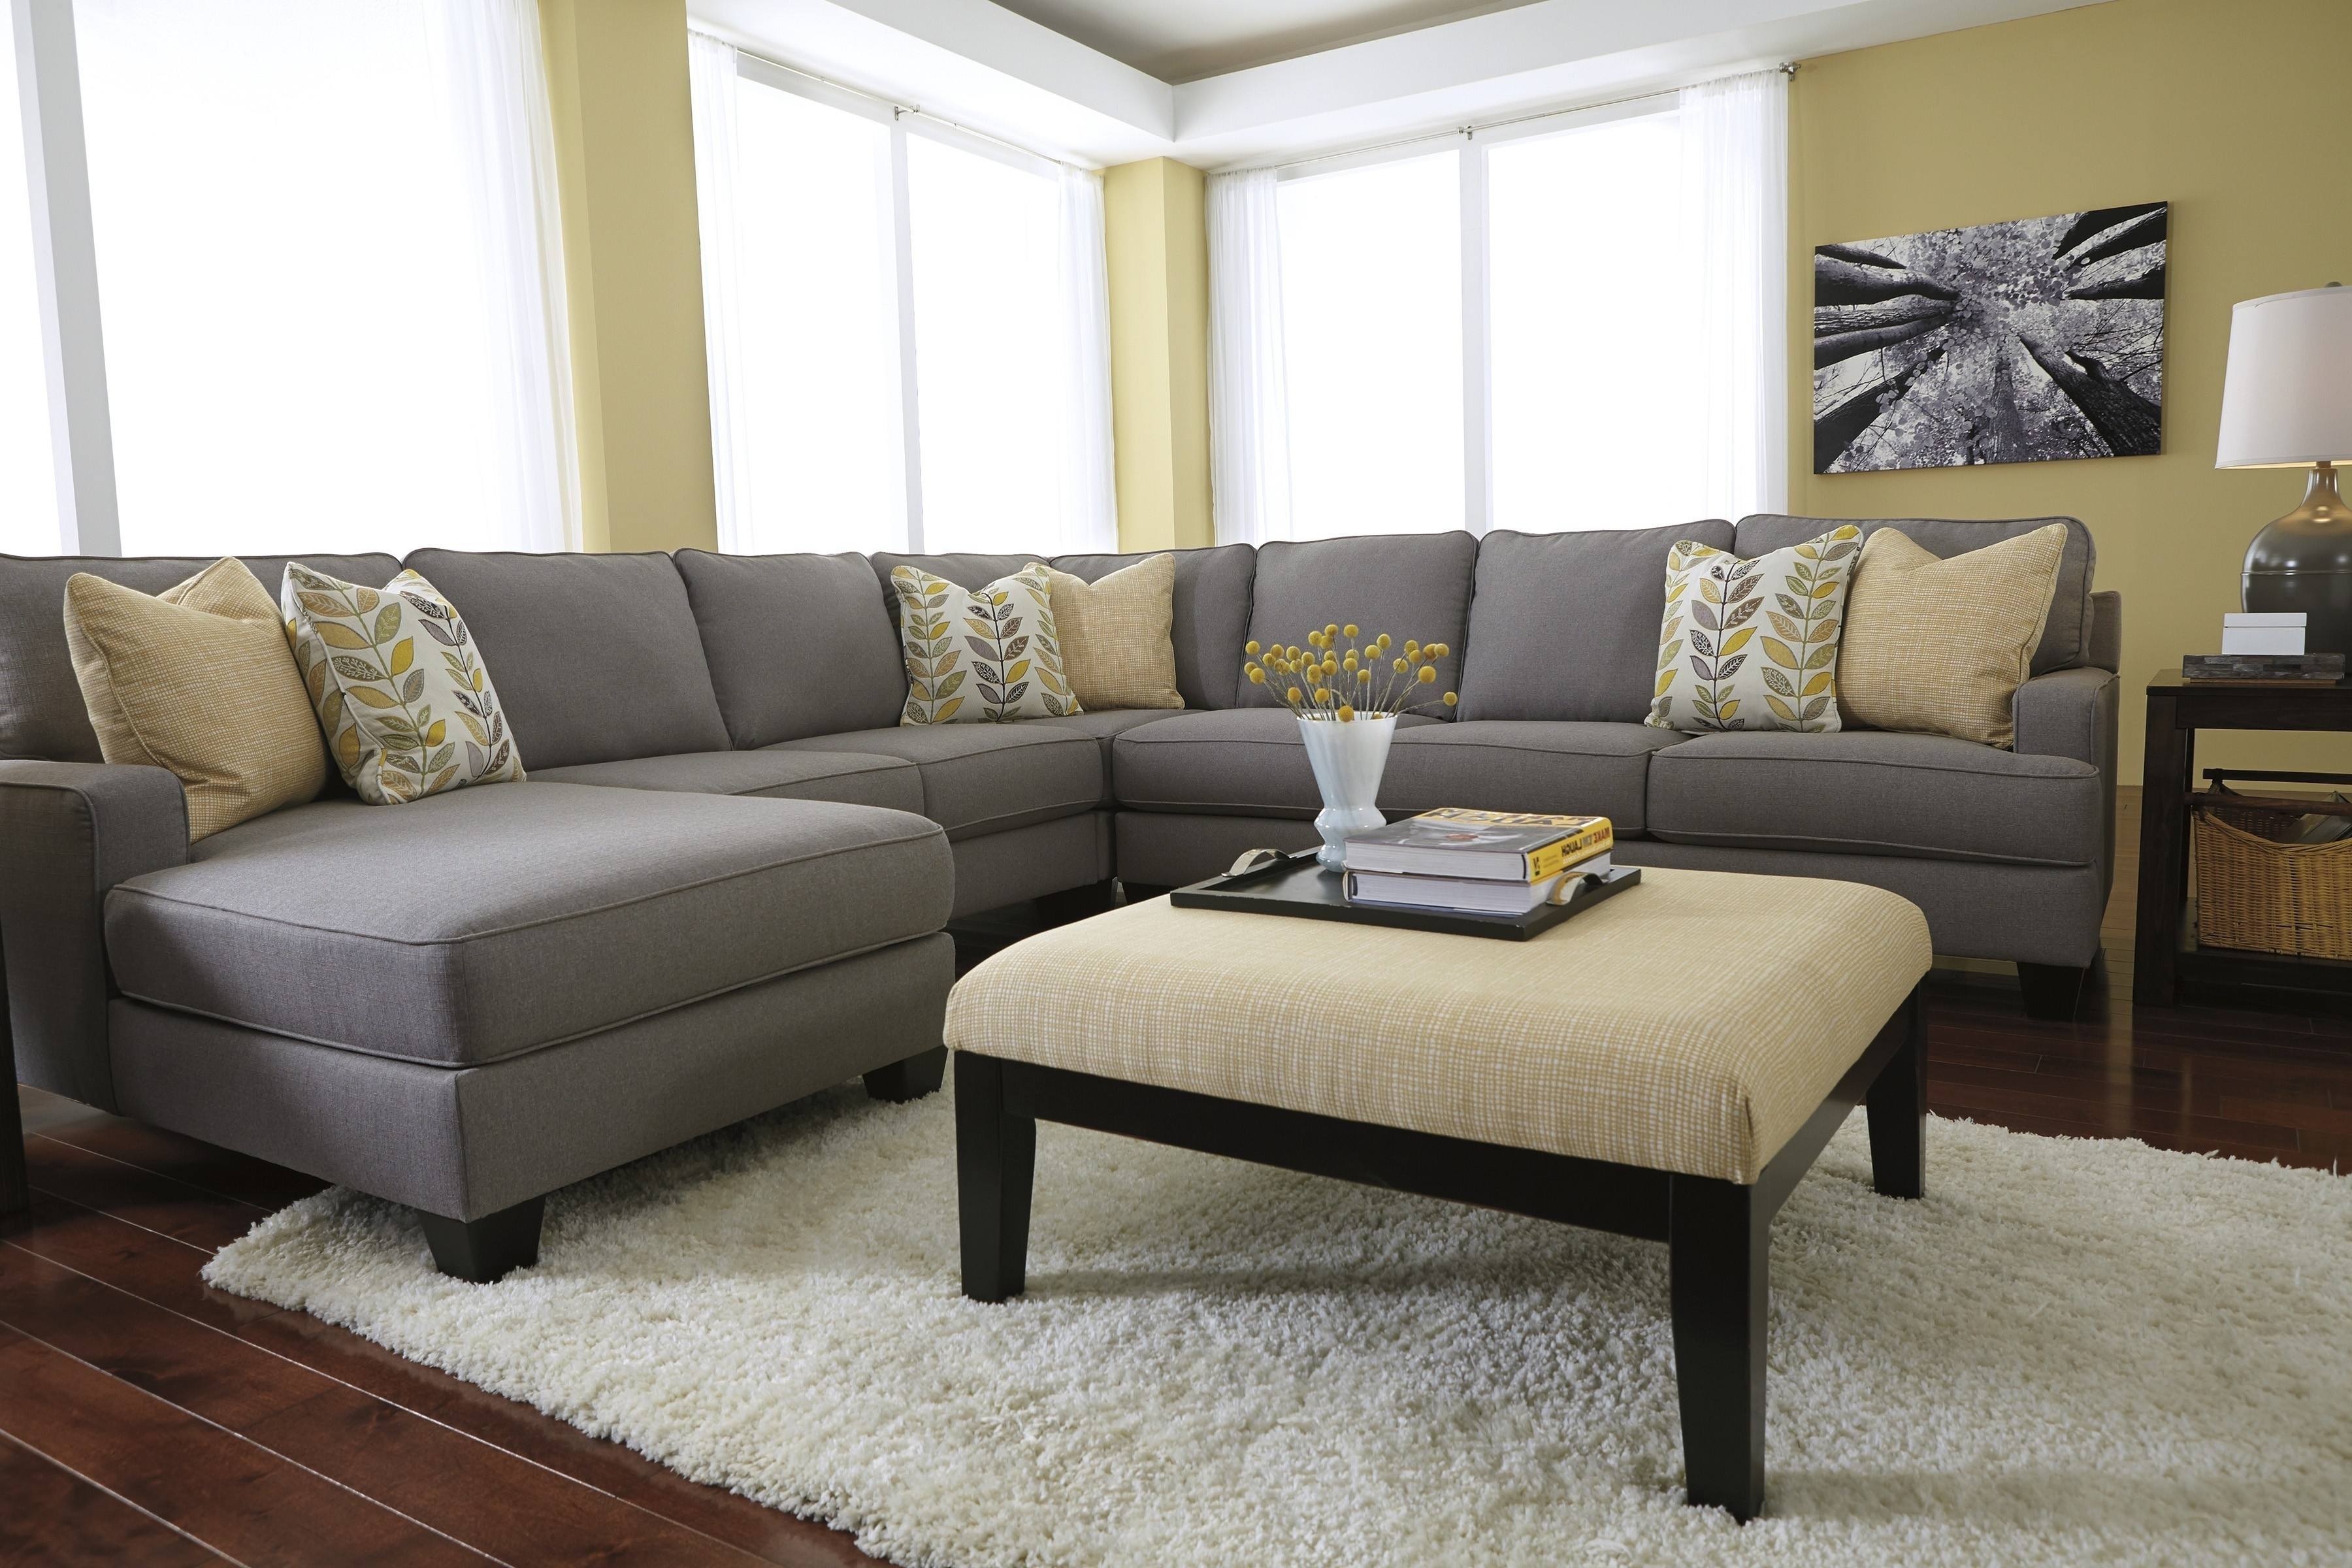 Most Recently Released Cool Perfect Light Grey Sectional Sofa 49 With Additional Small Intended For Small Sectional Sofas With Chaise And Ottoman (View 15 of 20)